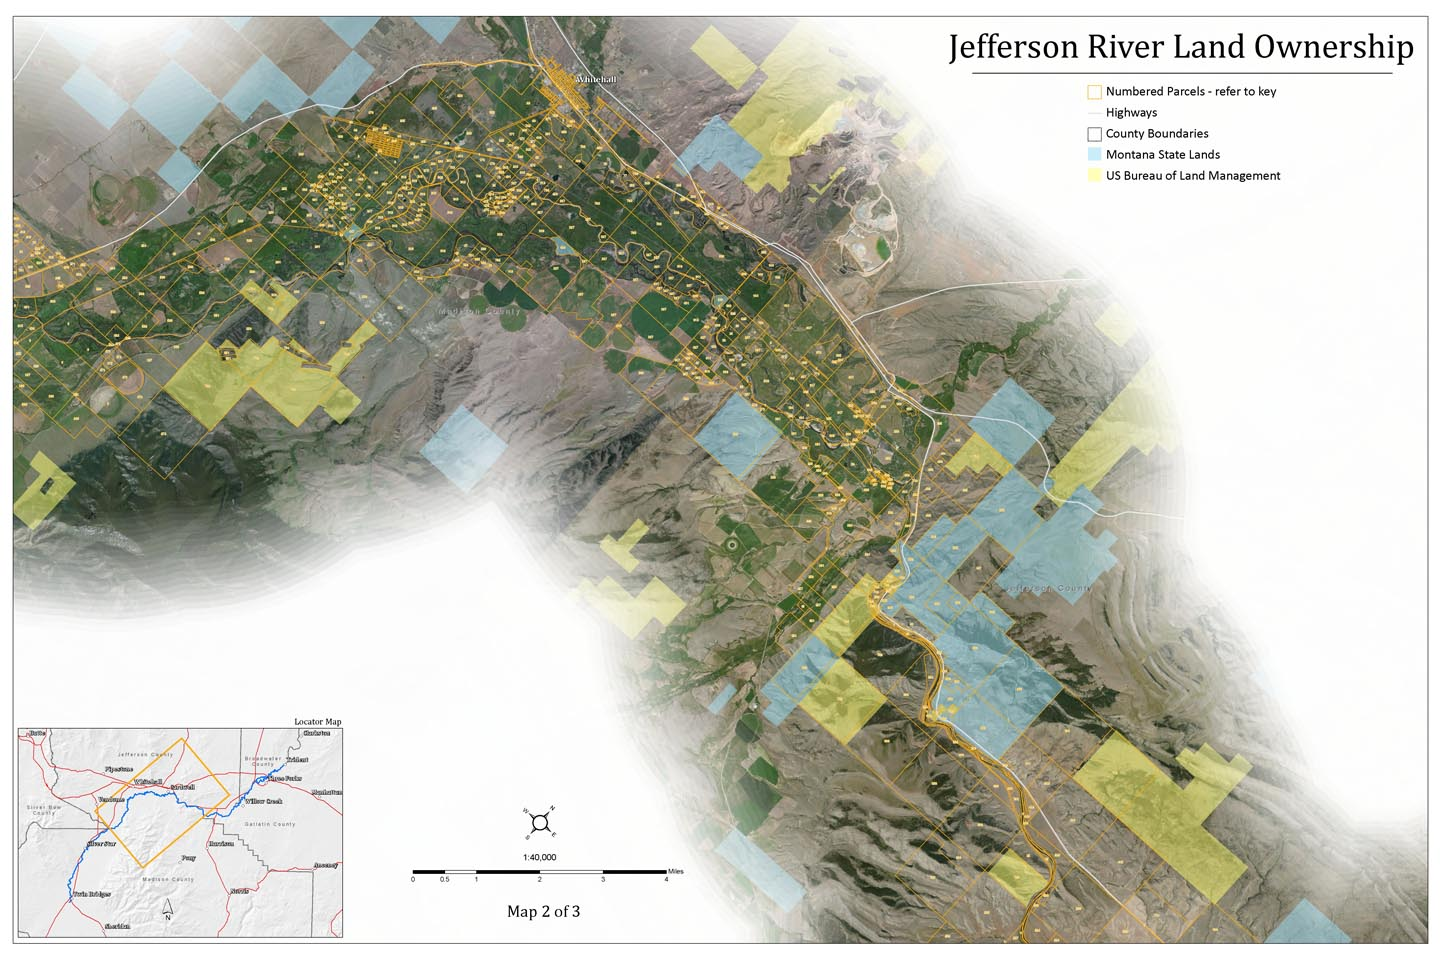 Middle Jefferson River Land Ownership Map, Montana.